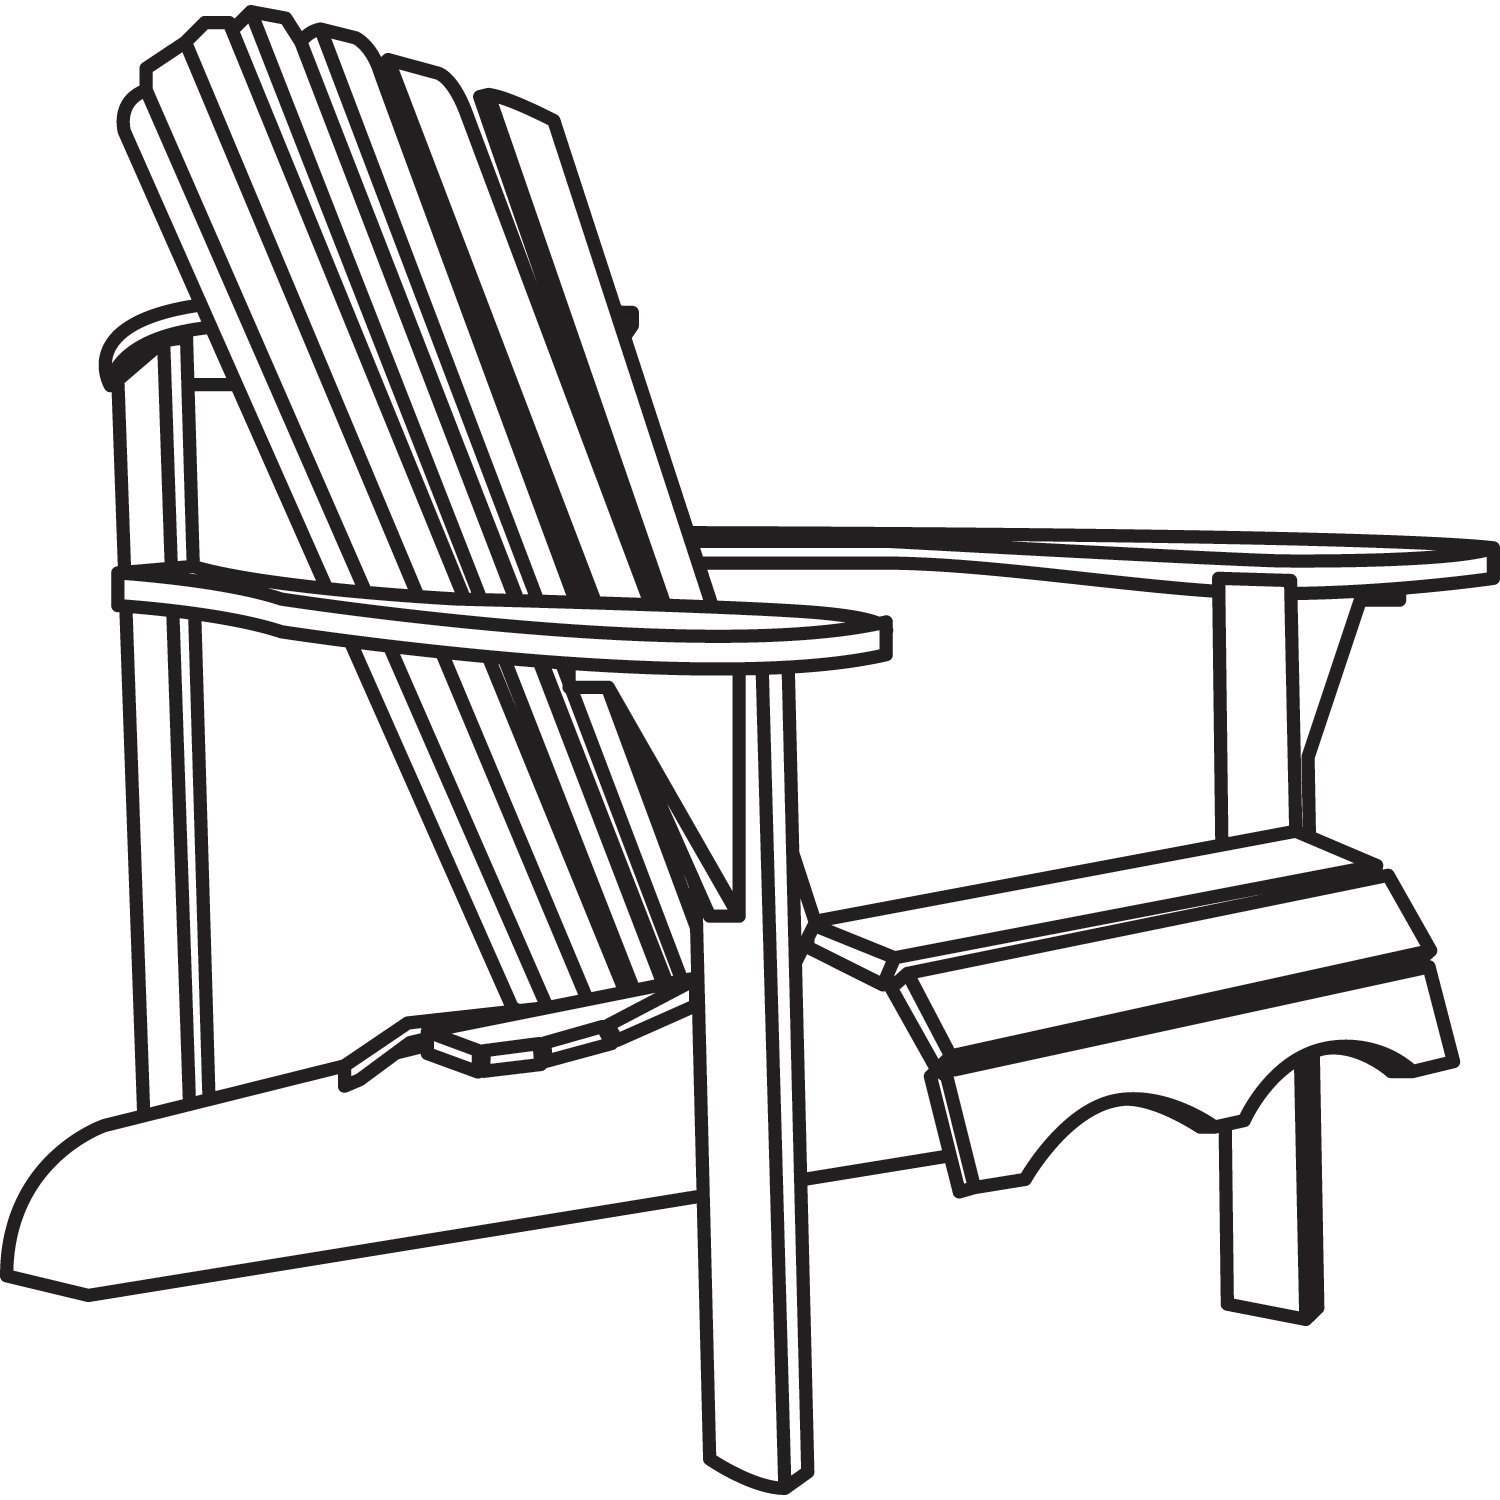 Adirondack chair clipart 4 » Clipart Station.